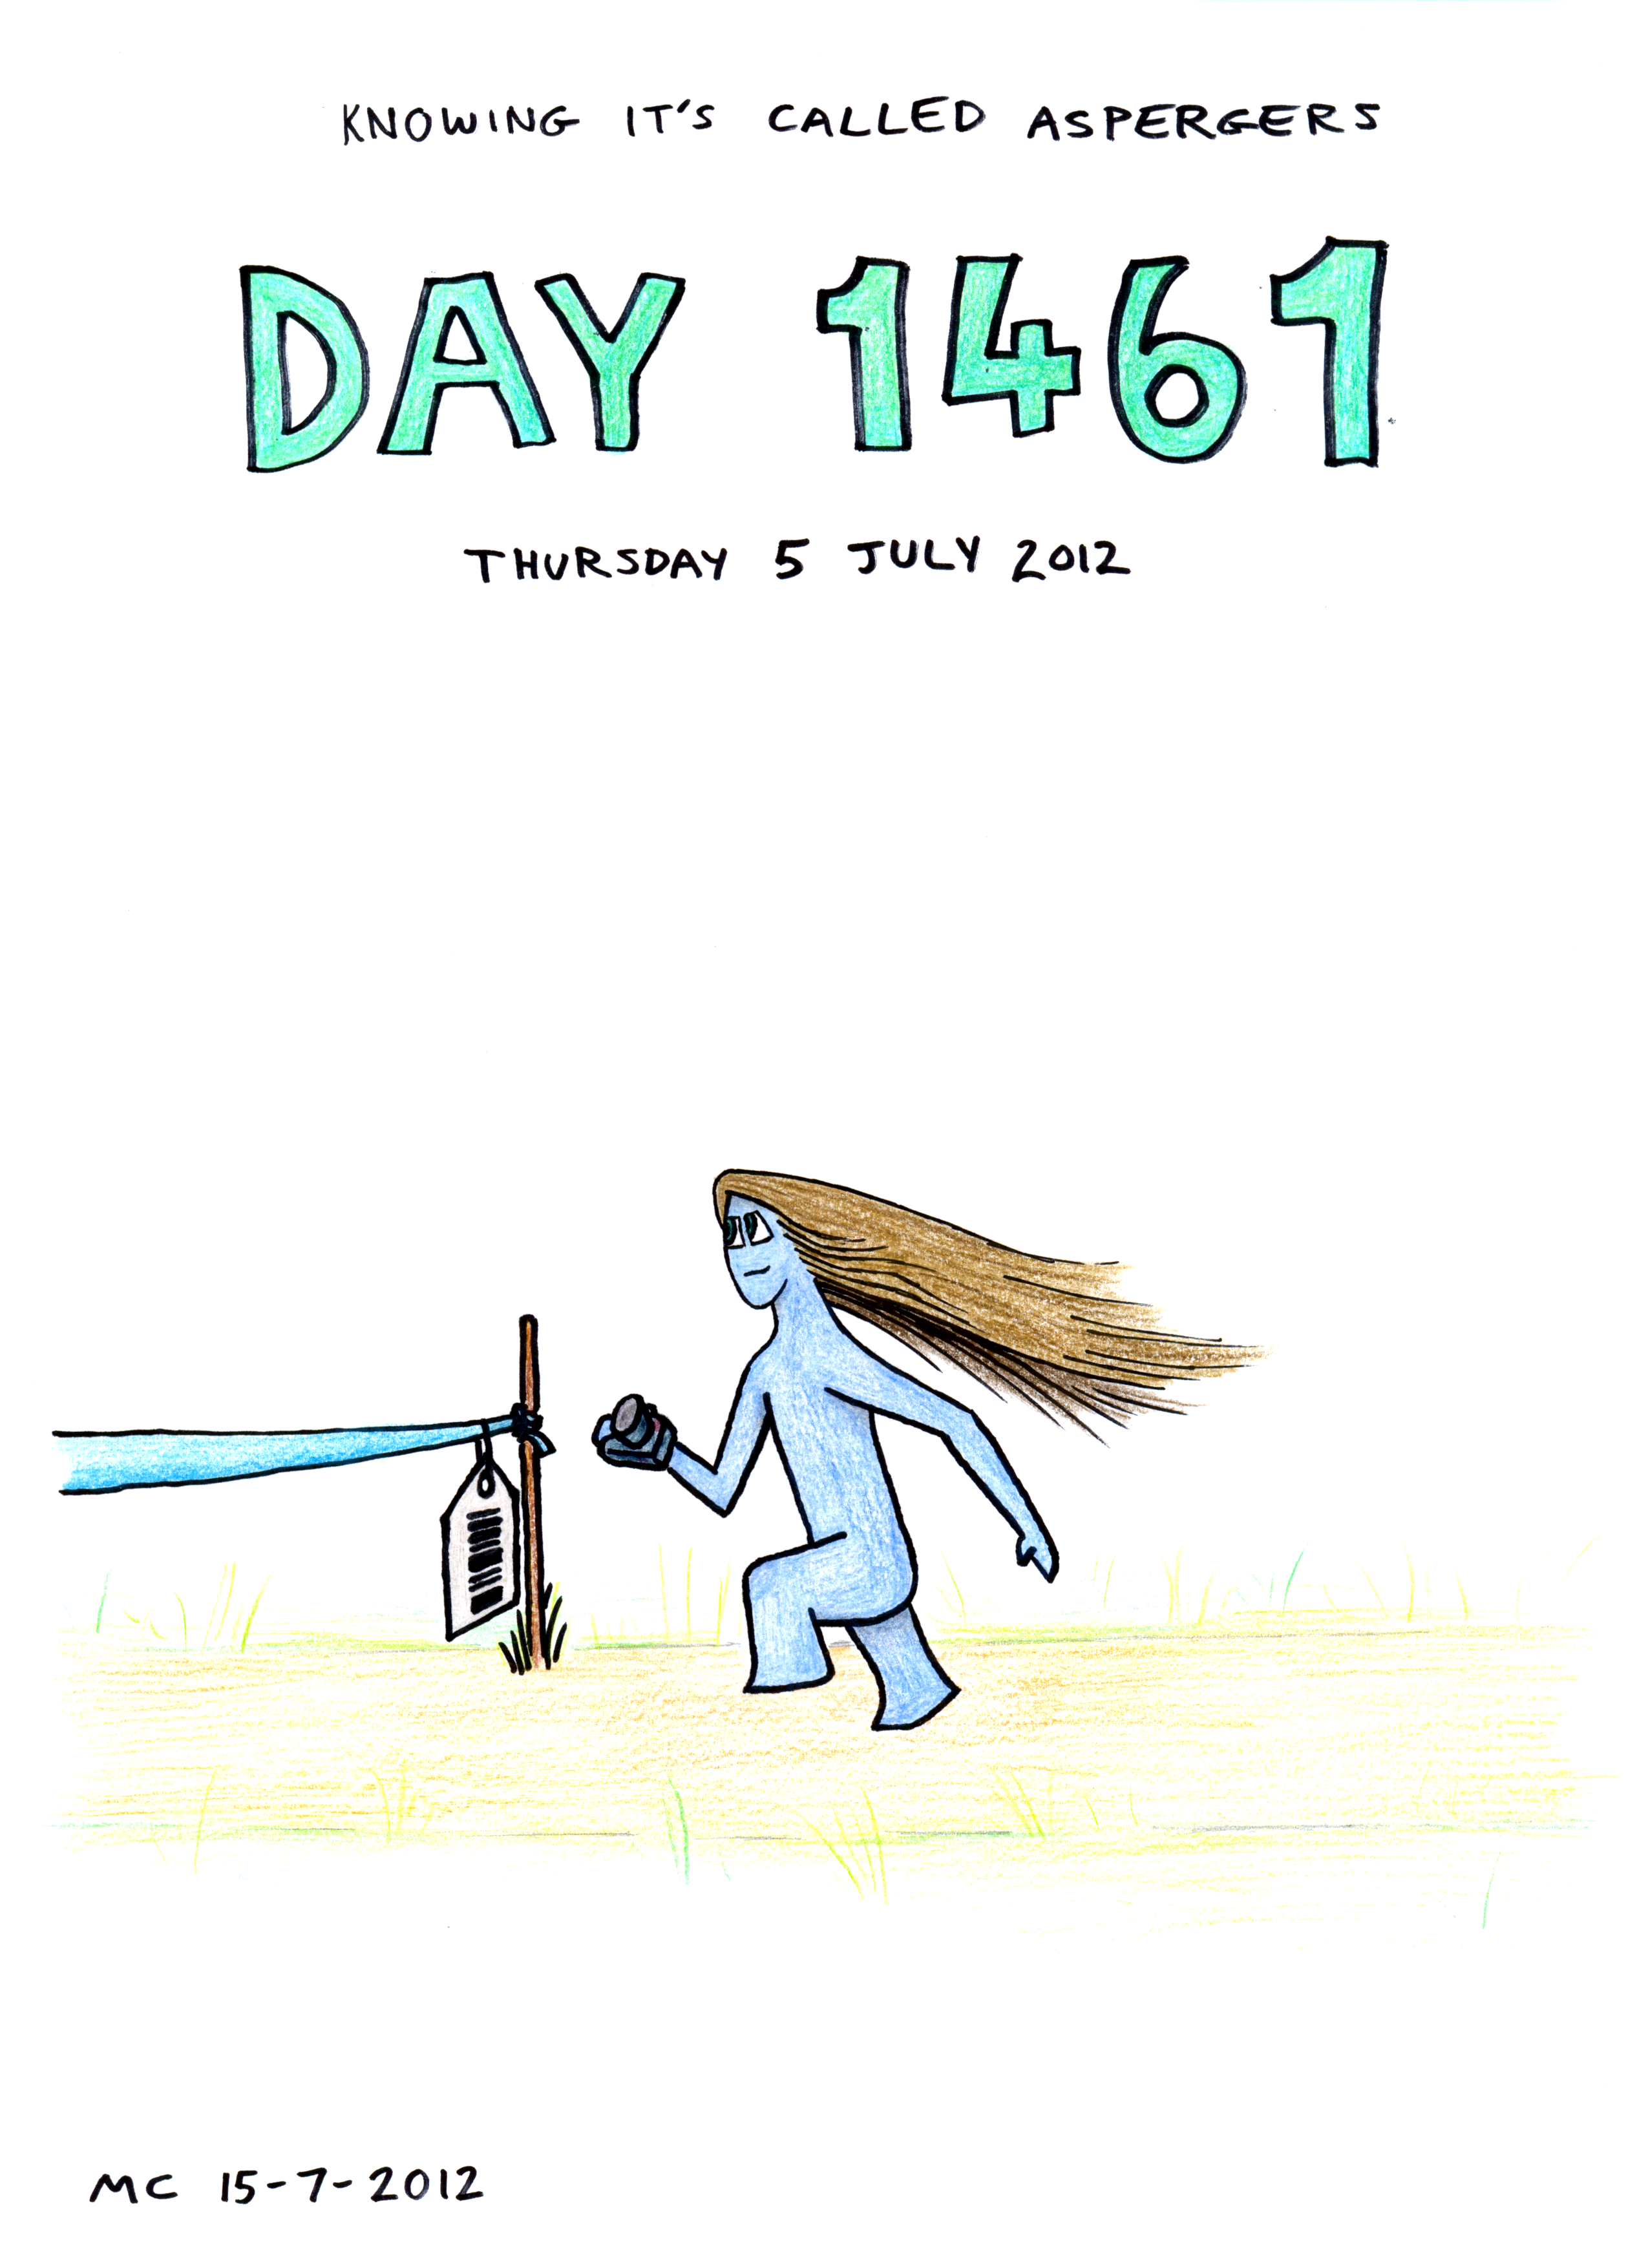 KICA Day 1461: Schedule Eats Dust by TheColclough